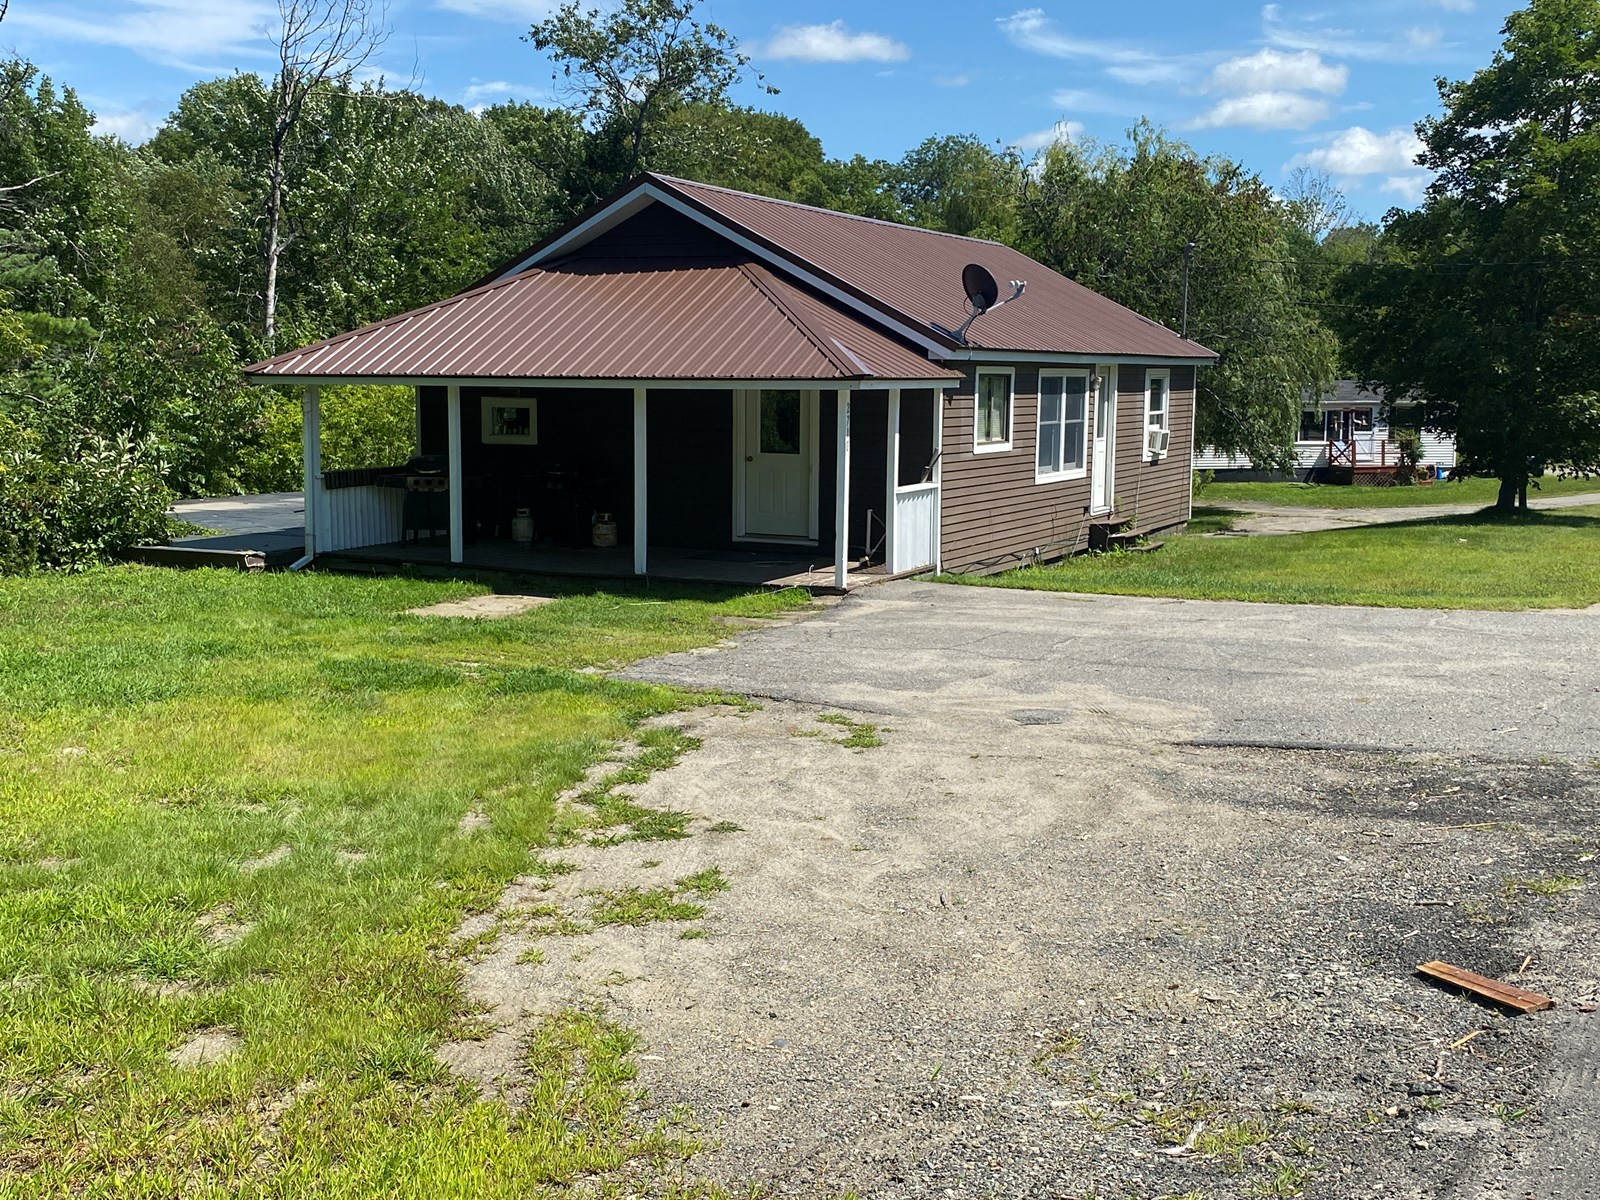 Ranch home in Lee, Maine